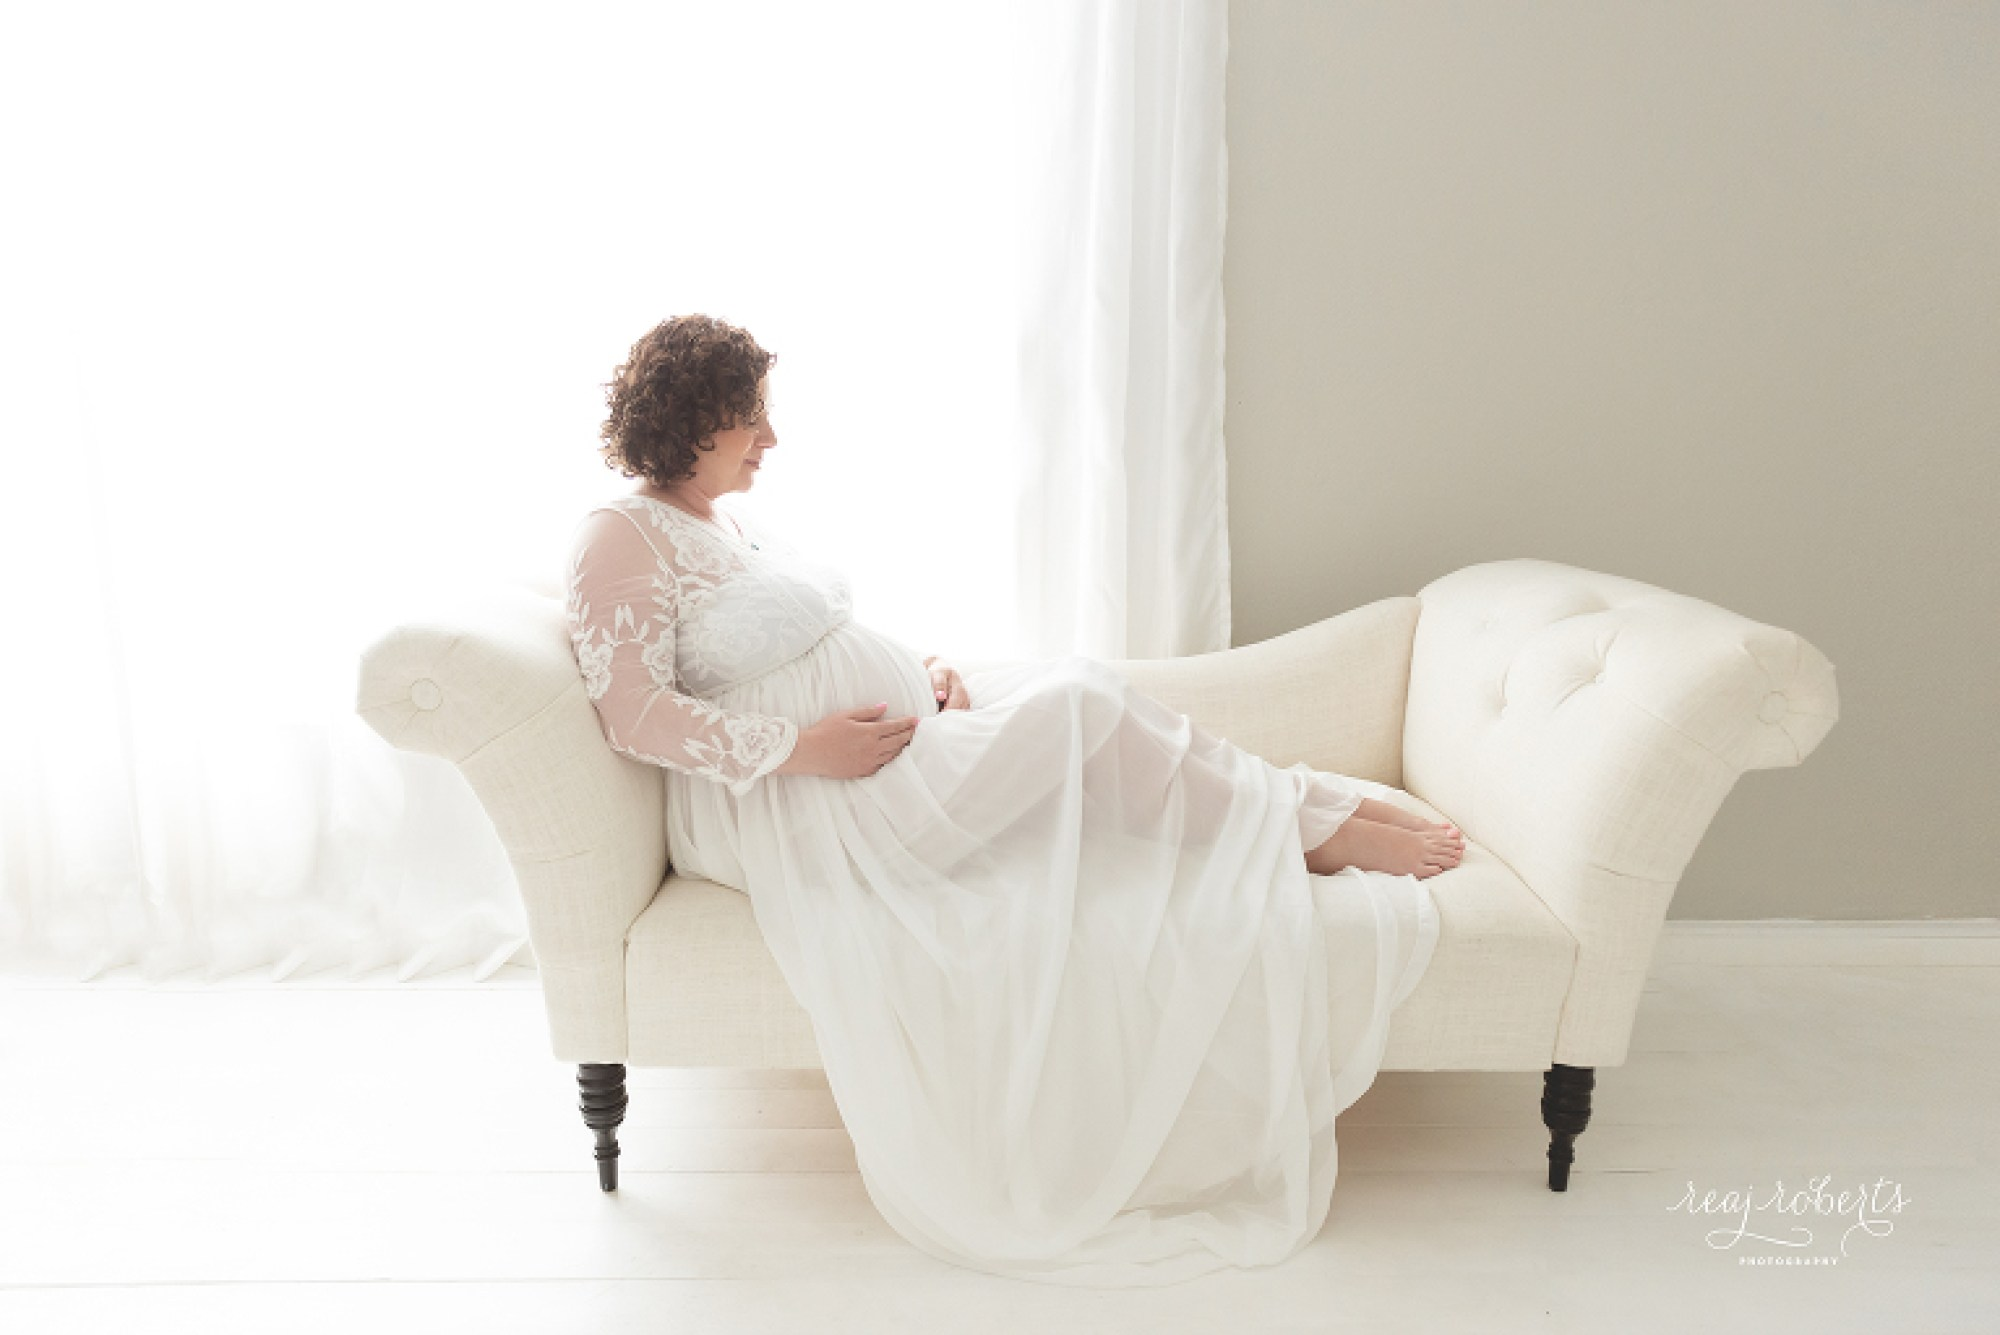 Phoenix maternity photos indoor studio | Reaj Roberts Photography